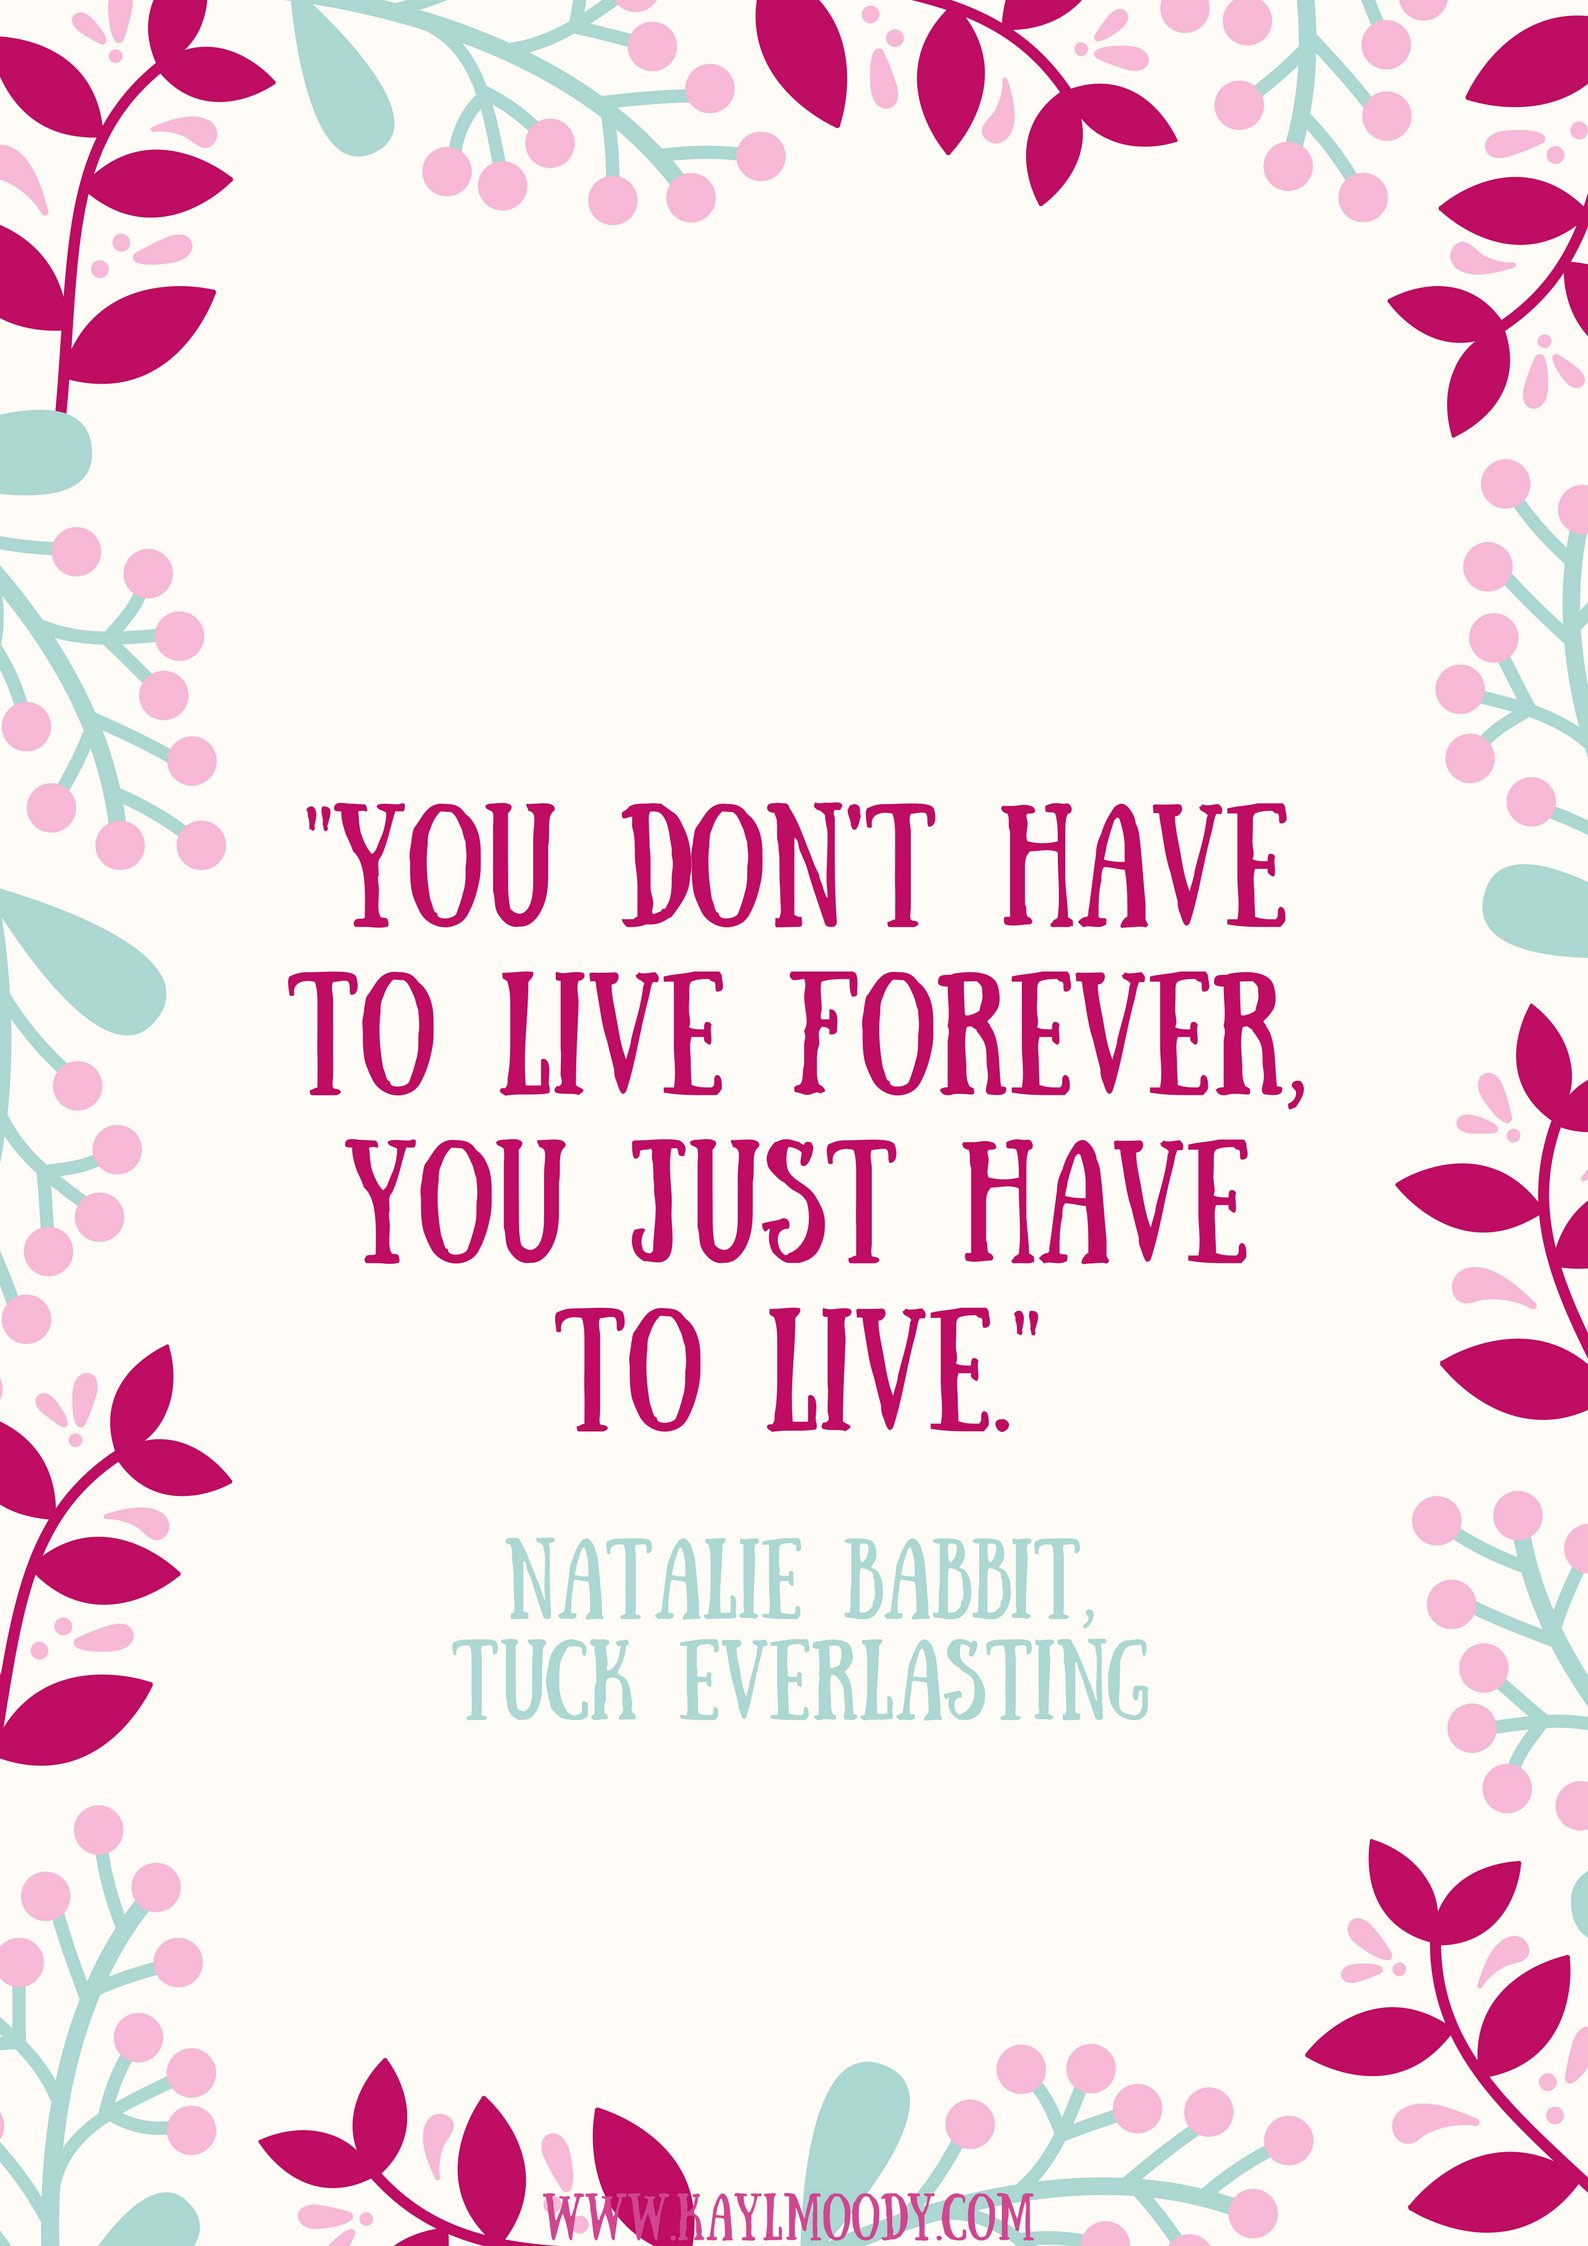 """Best book quotes, love quotes from books, sci fi book quotes, Harry Potter quotes, Dr. Seuss quotes, and more from Kay L Moody! """"You don't have to live forever, you just have to live."""" (Natalie Babbit, Tuck Everlasting)"""